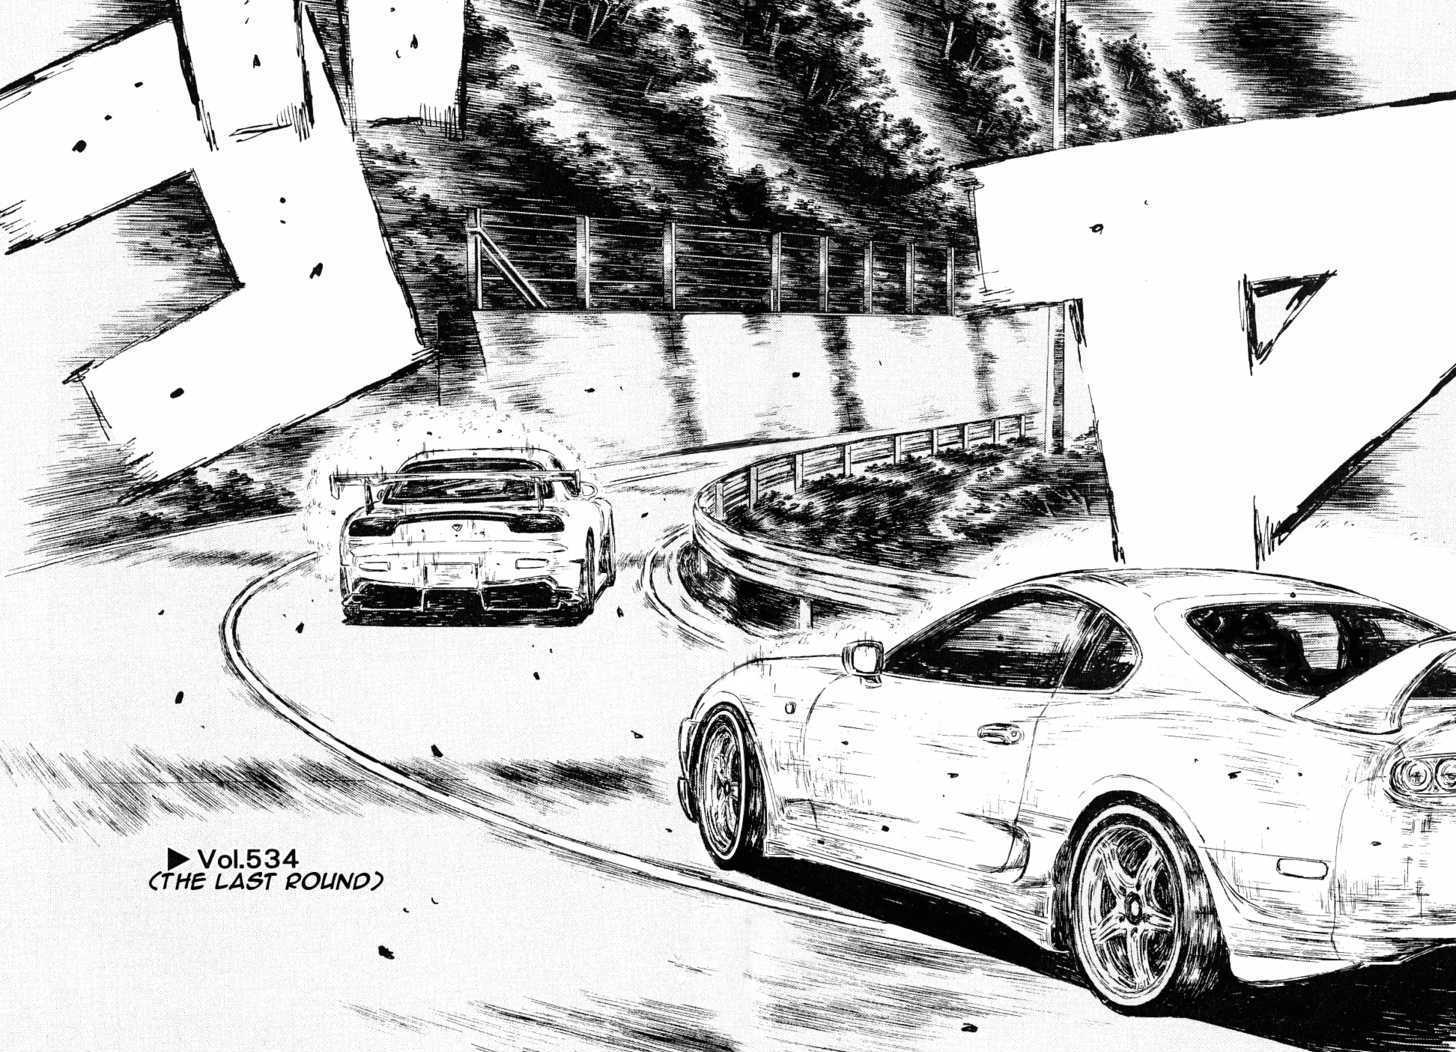 https://im.nineanime.com/comics/pic9/61/2493/61210/InitialD5340154.jpg Page 1